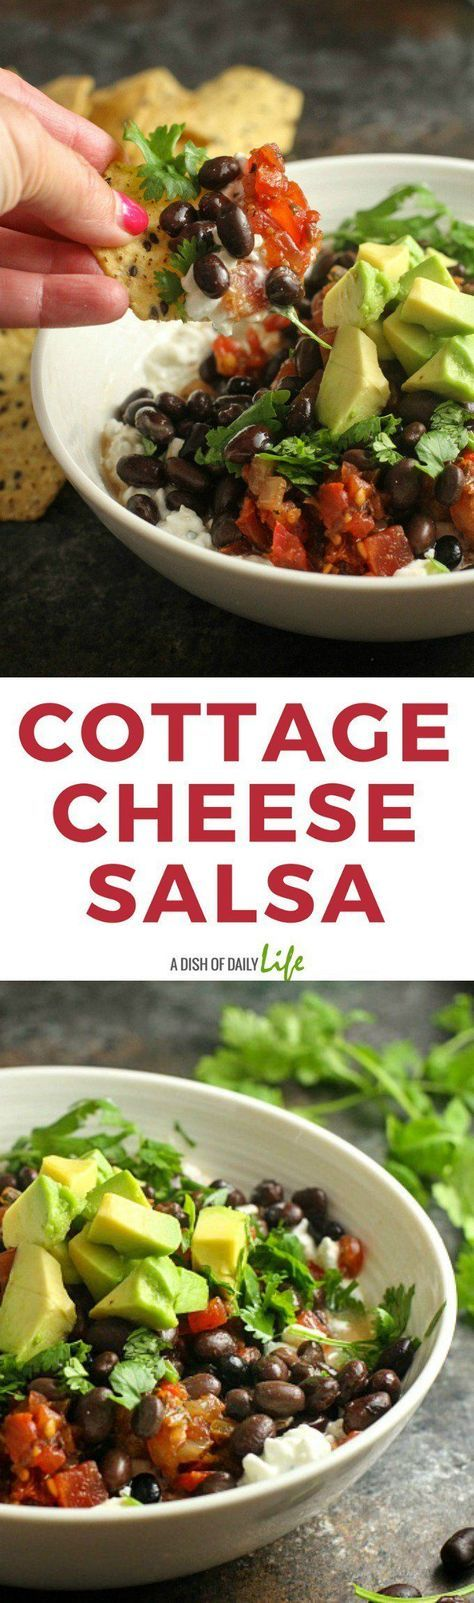 Cottage Cheese Salsa...this easy and delicious protein packed snack is the perfect post workout snack or healthy lunch! Serve it with multigrain chips or crackers, or eat it with a spoon! Sponsored by @Hphood